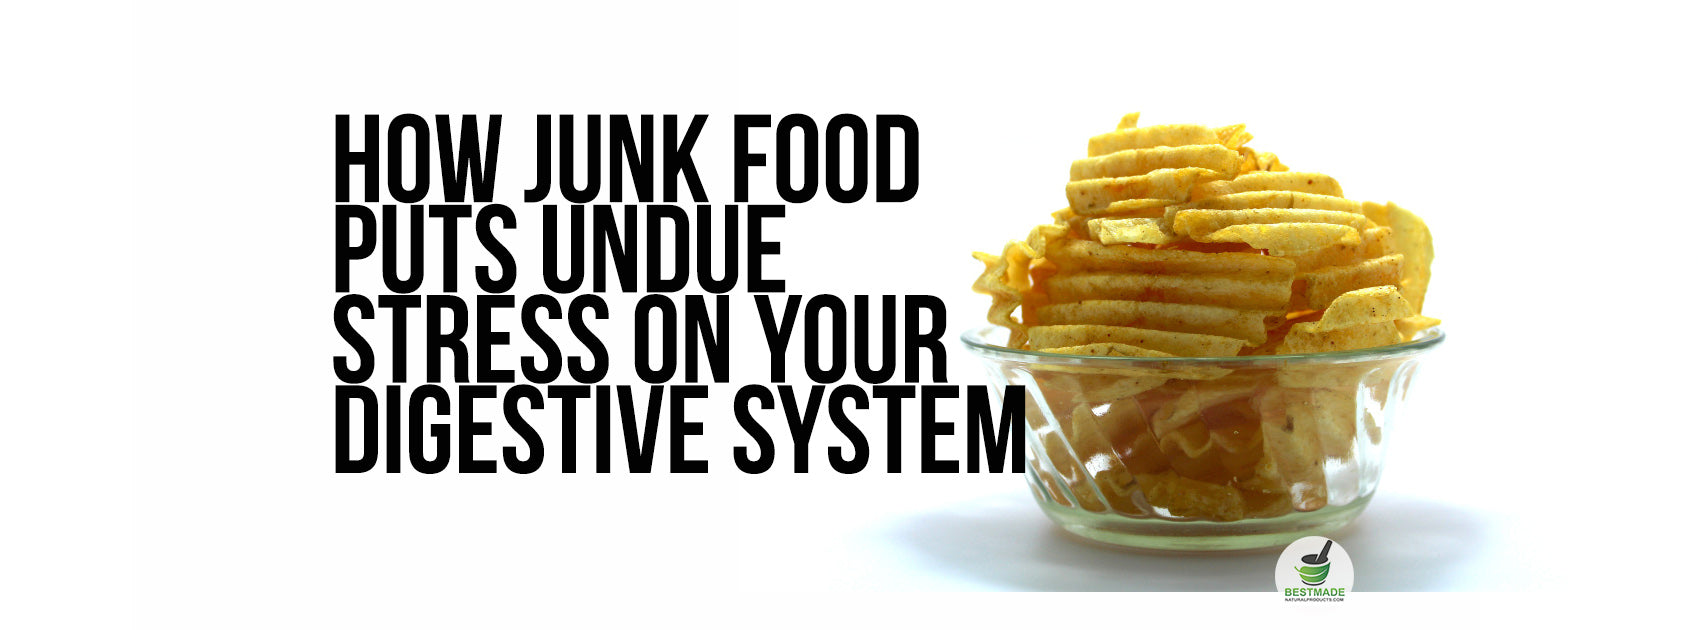 How Junk Food Puts Undue Stress On Your Digestive System